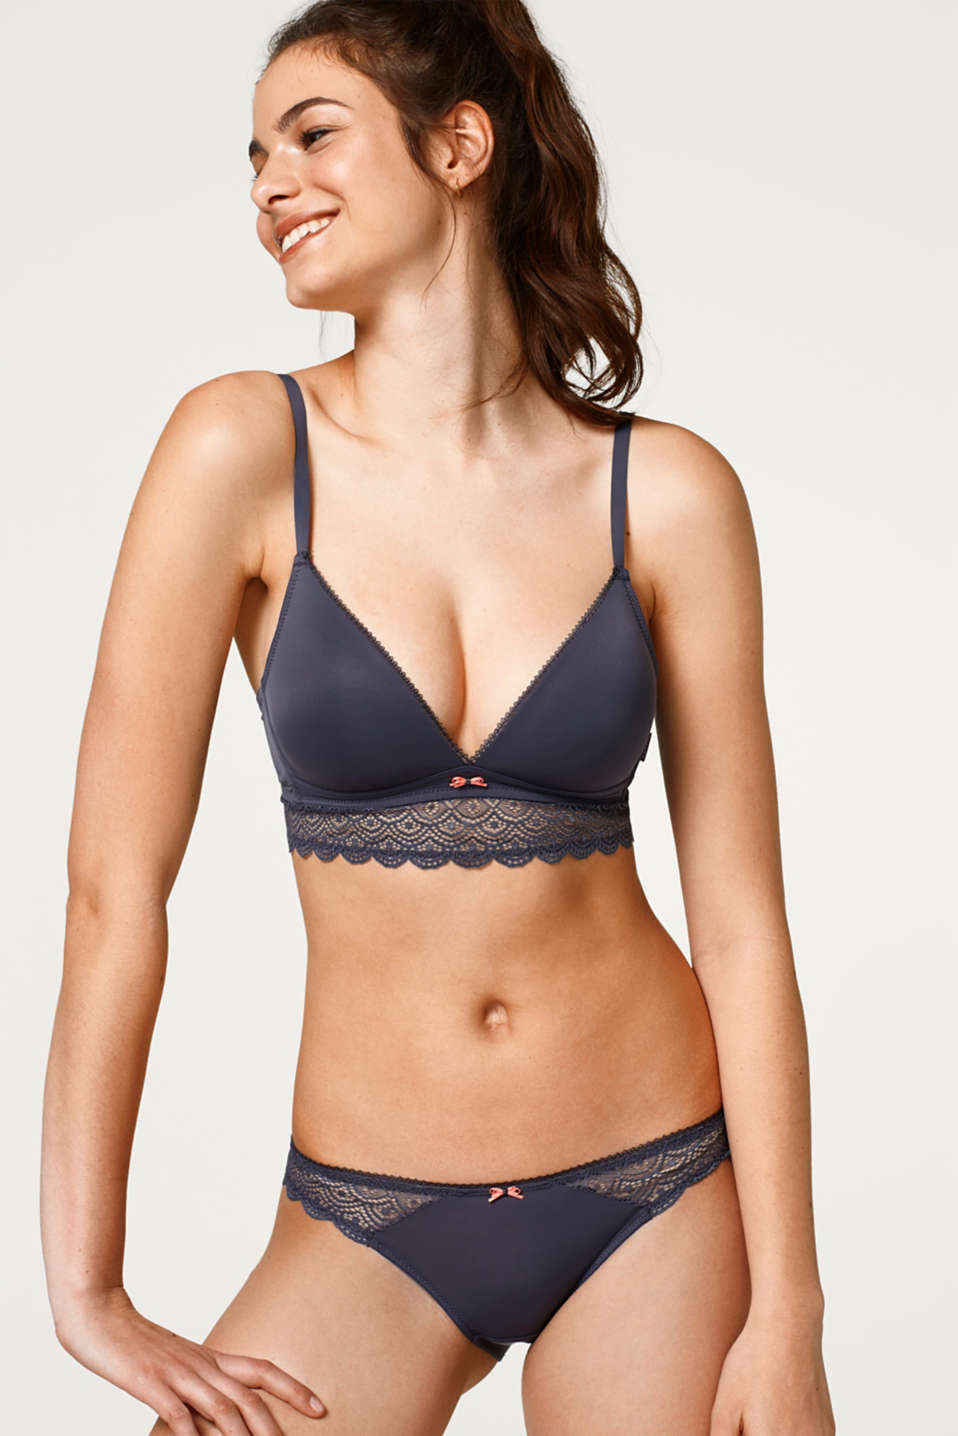 Esprit - Padded non-wired bra with lace trim